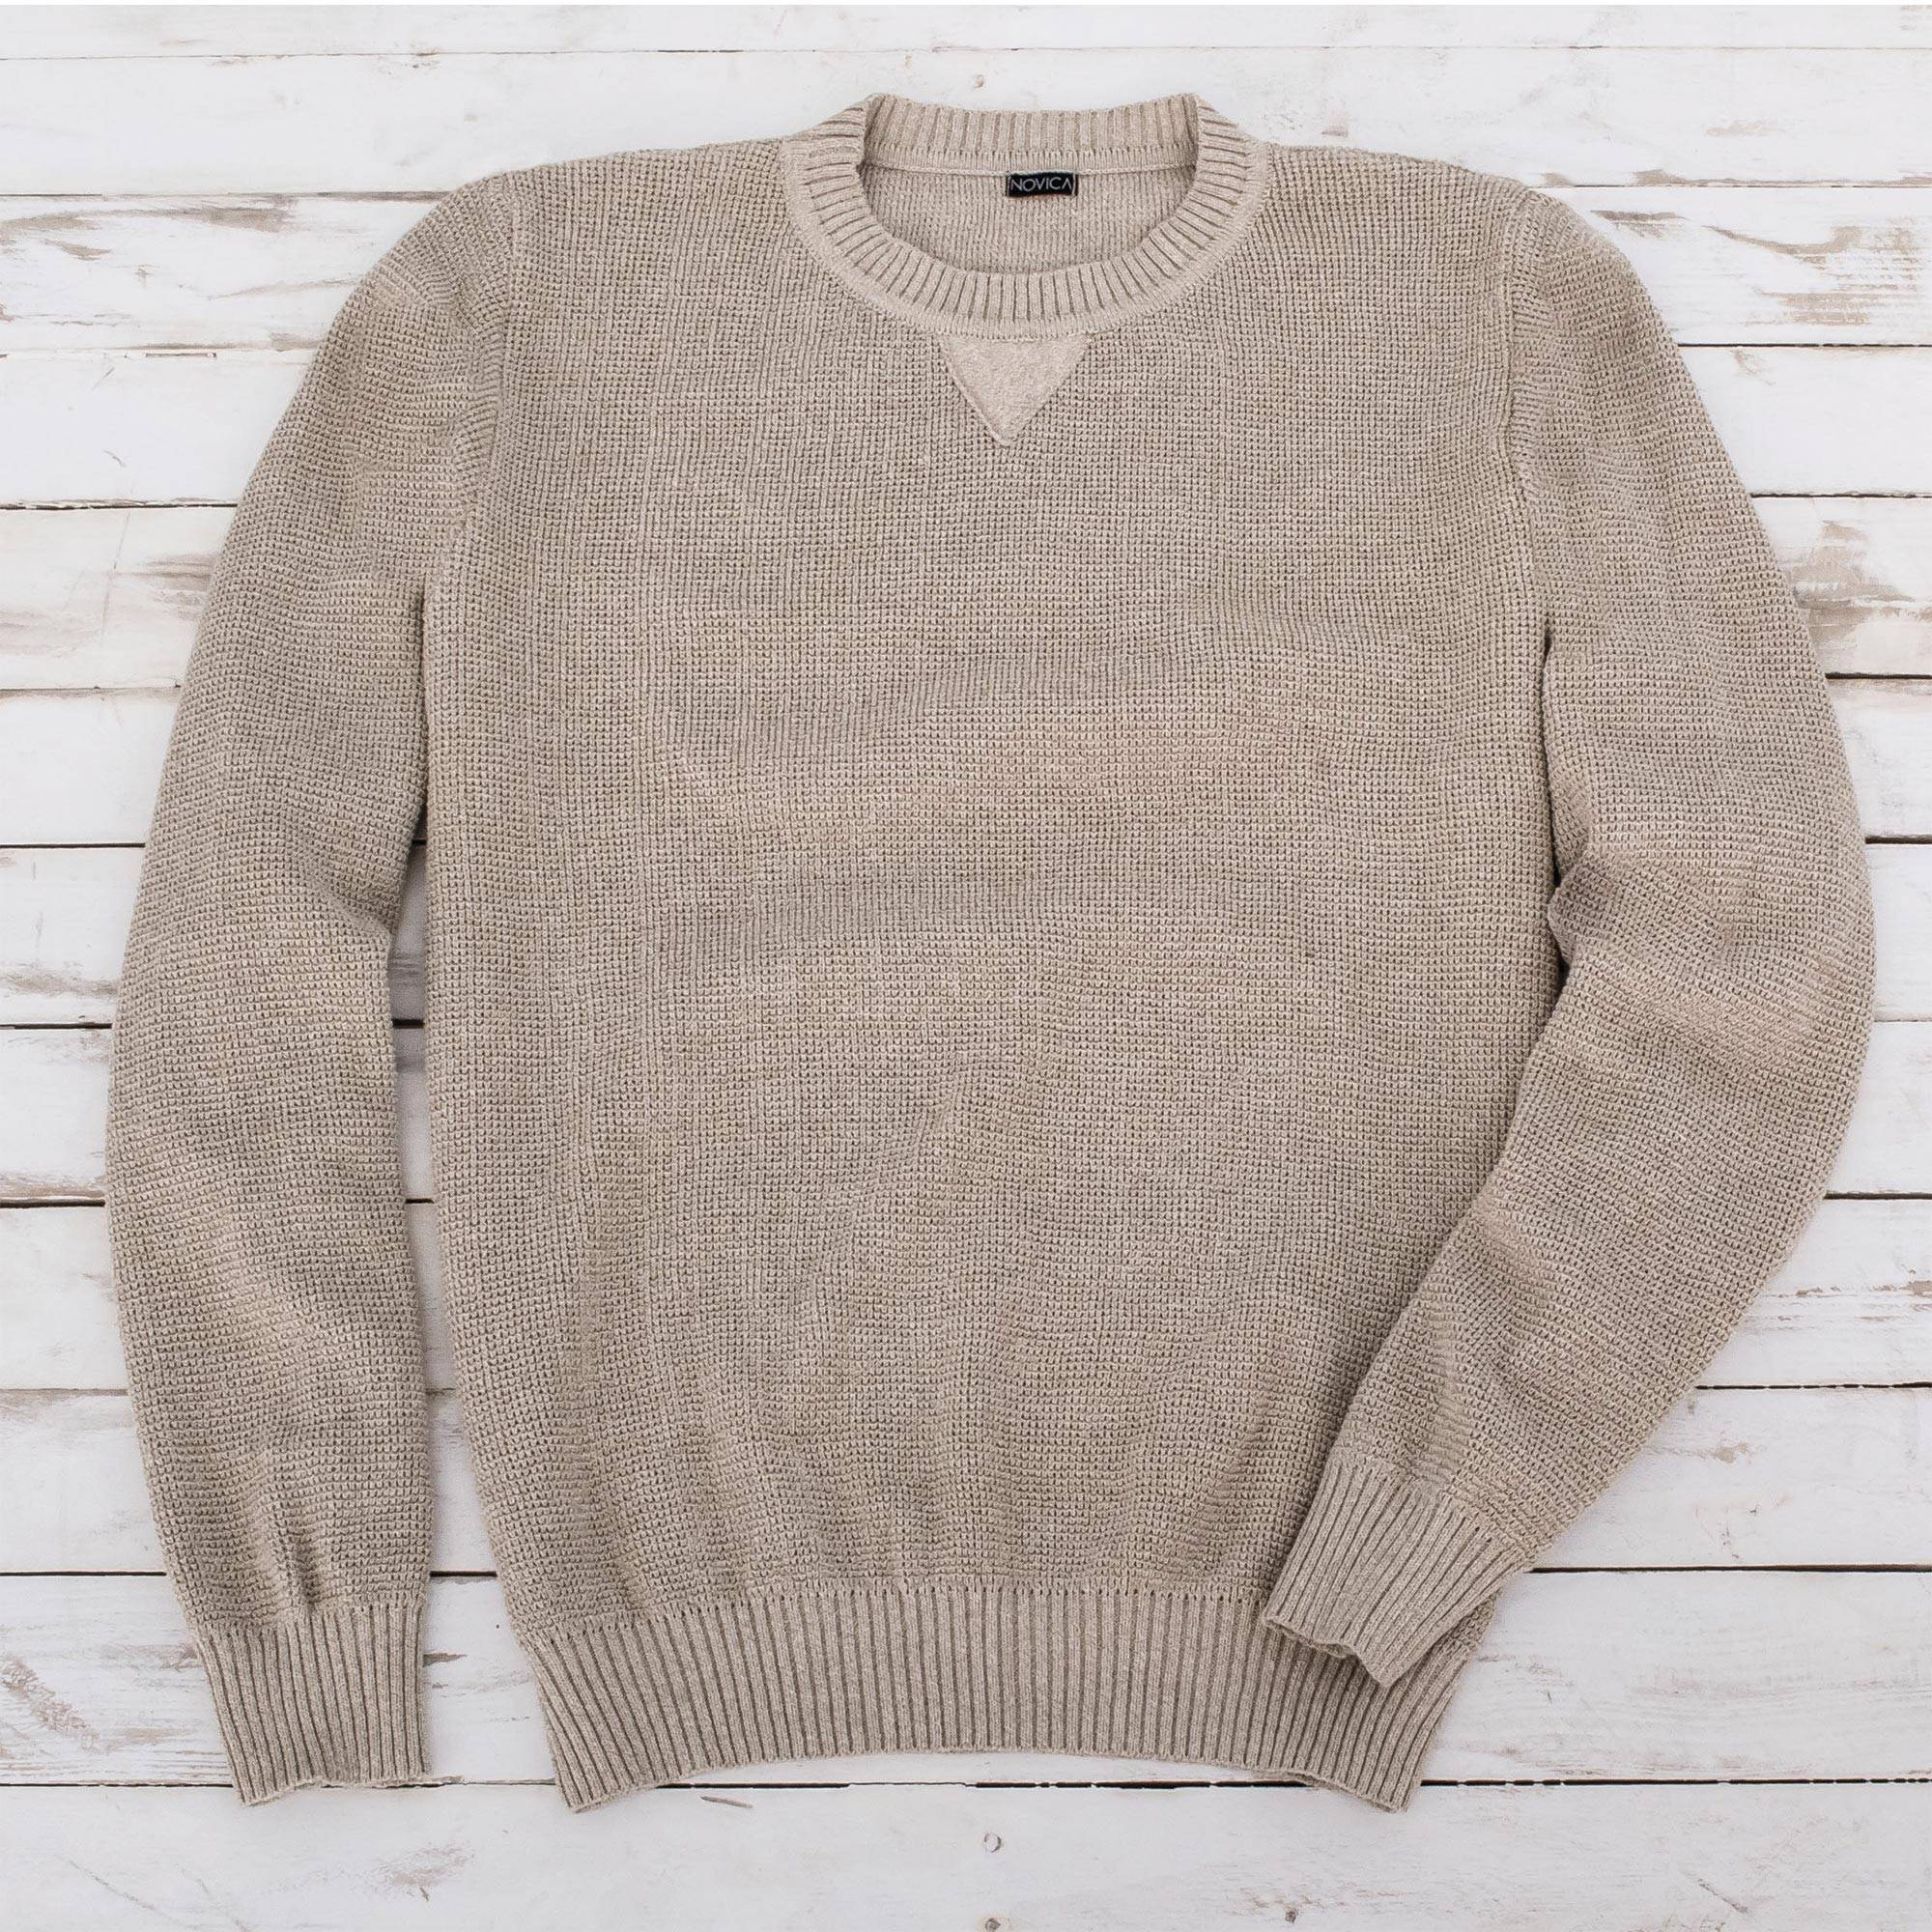 "From the Waist Up Zoom Meetings Fashion Men's Beige Cotton Pullover Sweater from Guatemala, ""Sporting Elegance"""